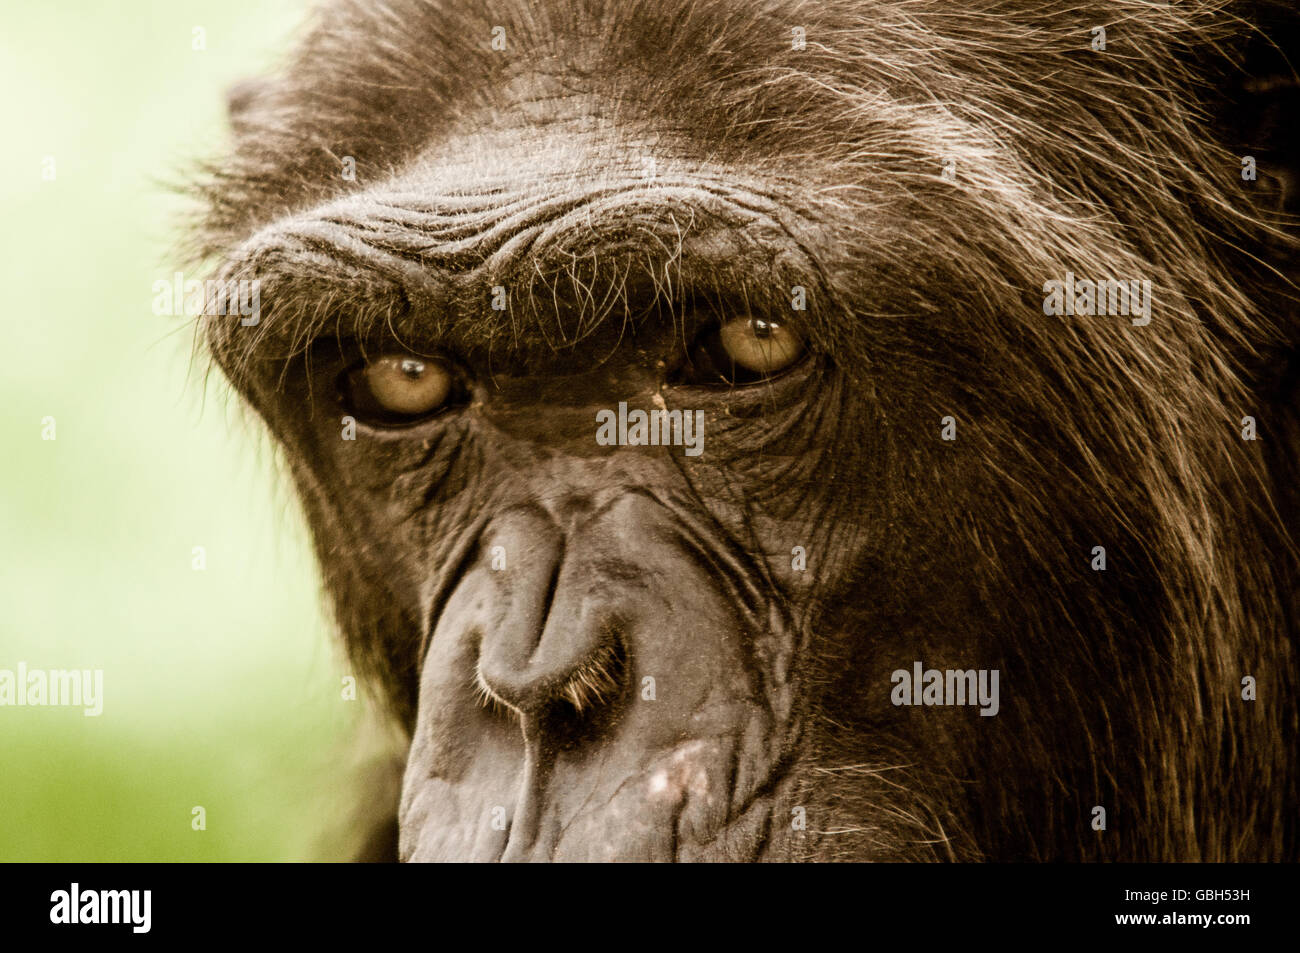 A wise ape in Al Ain Zoo, - Stock Image